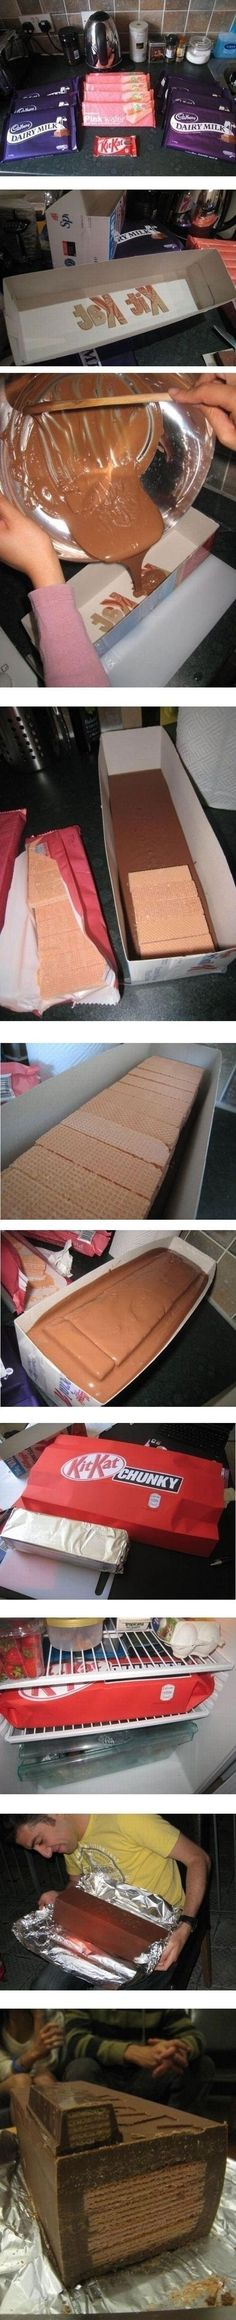 Kit Kat CHUNKY  - funny pictures #funnypictures